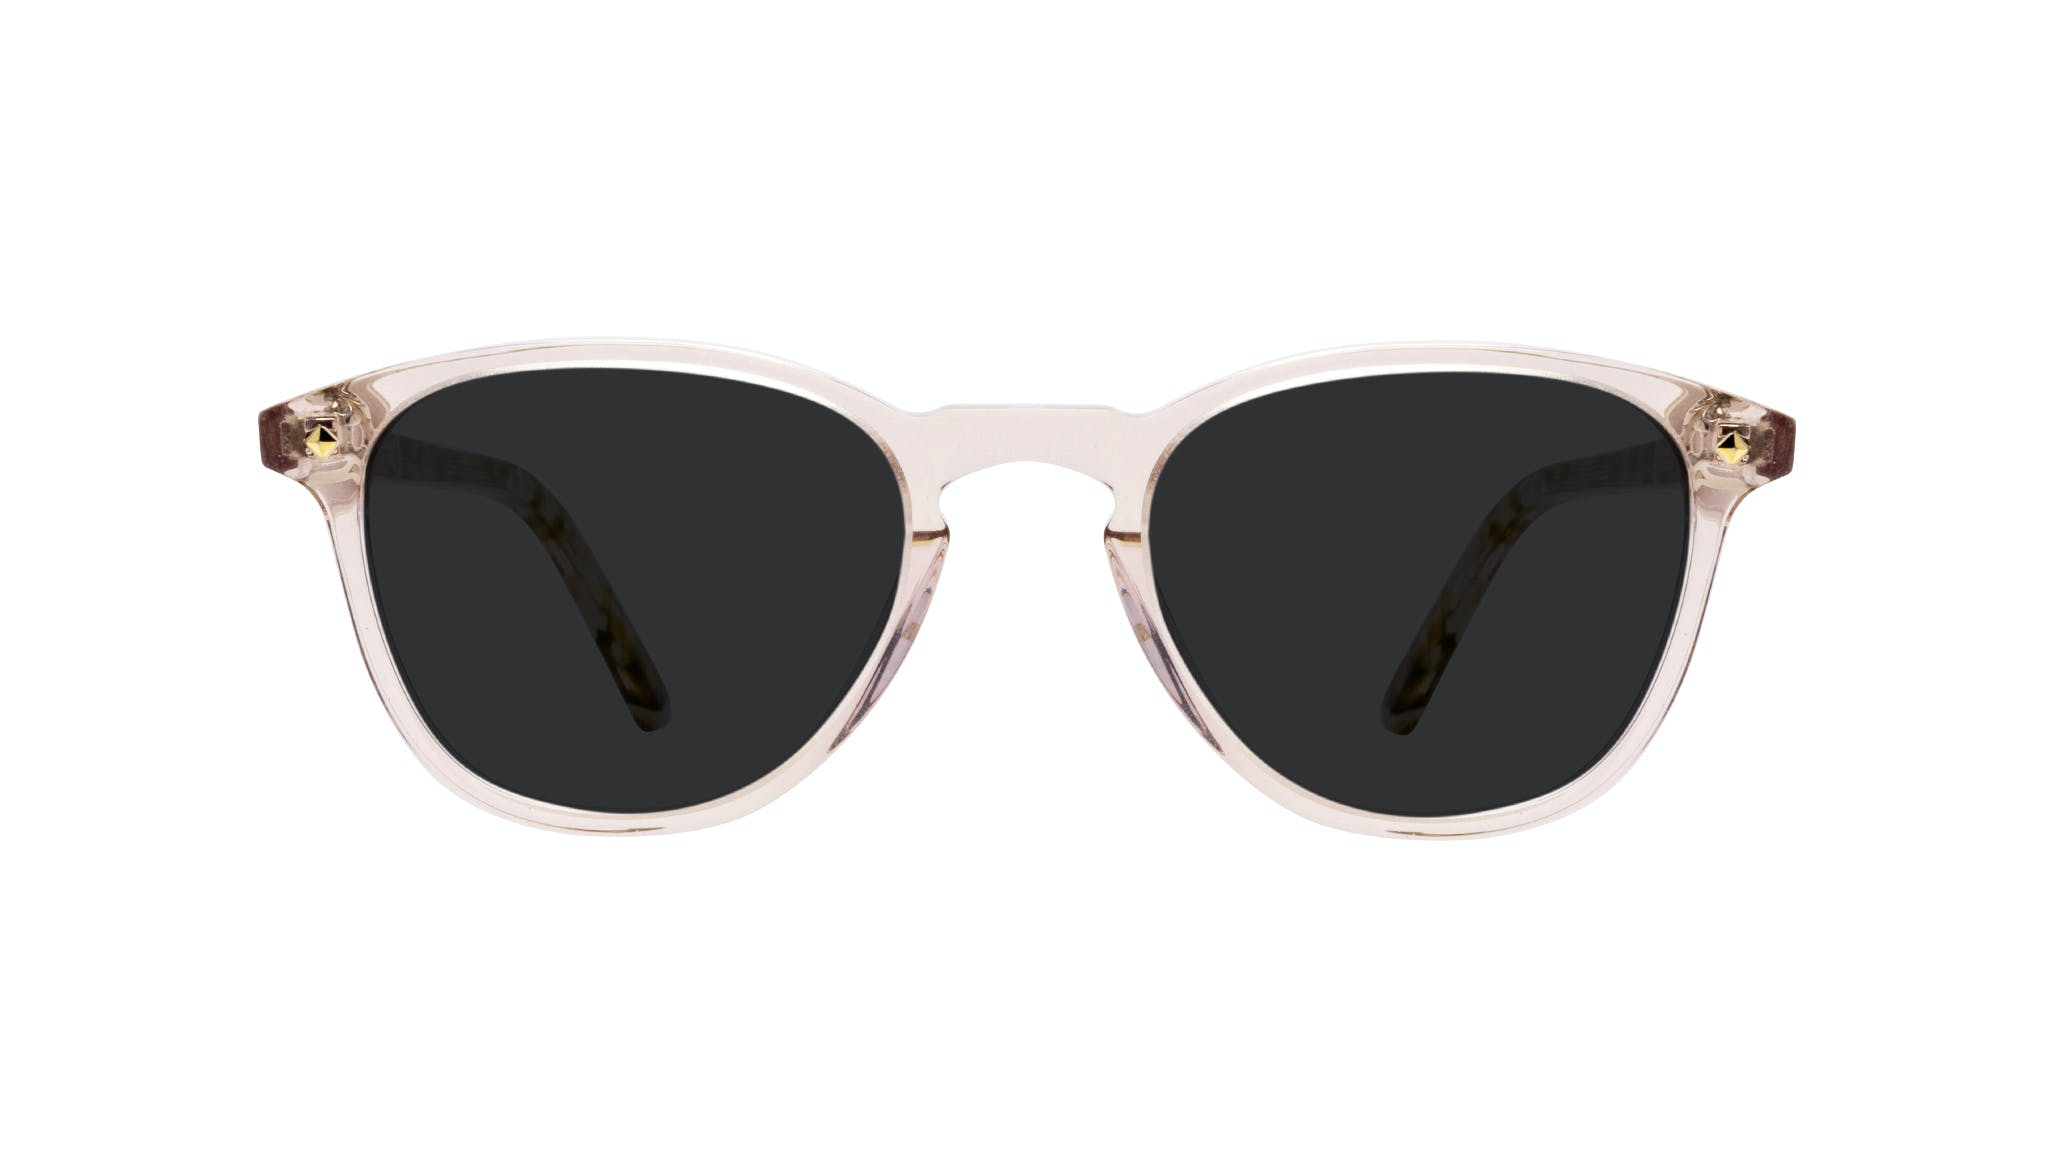 Affordable Fashion Glasses Round Sunglasses Women Crush Rose